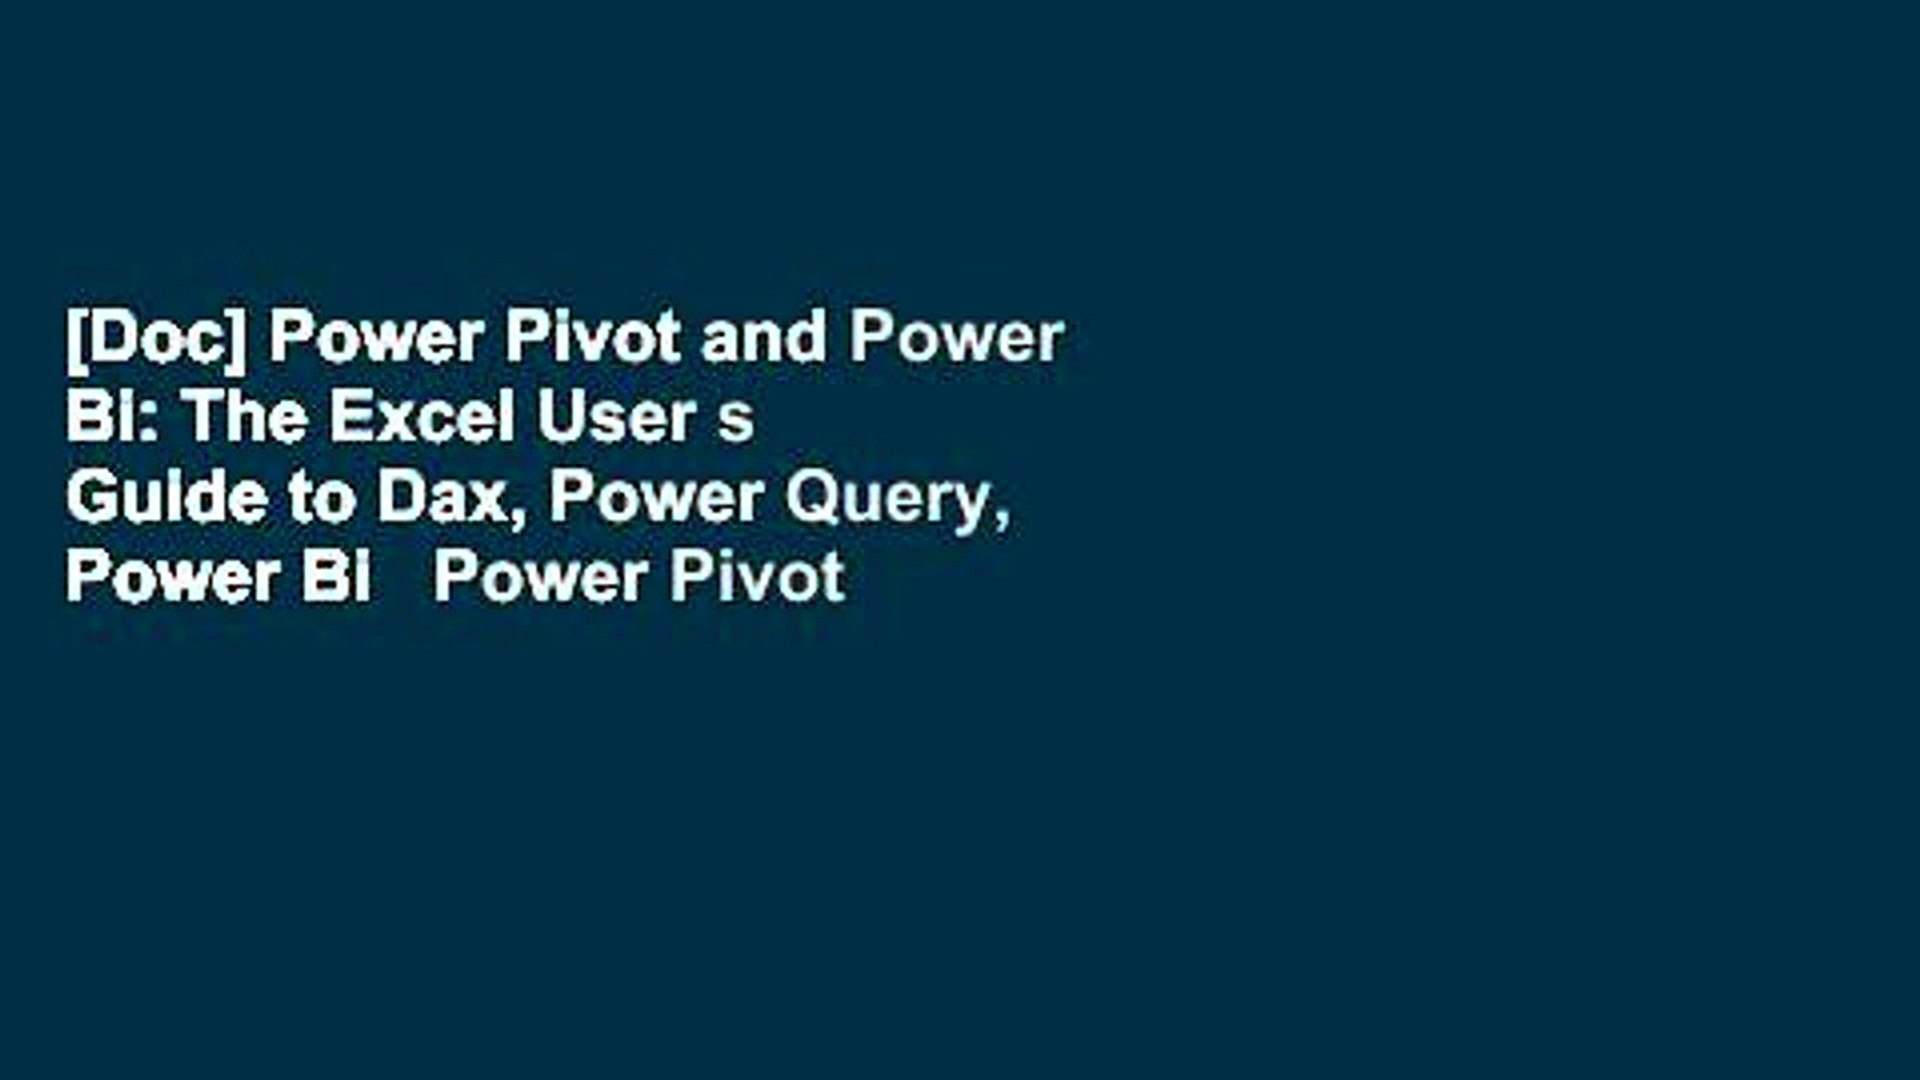 [Doc] Power Pivot and Power Bi: The Excel User s Guide to Dax, Power Query, Power Bi   Power Pivot